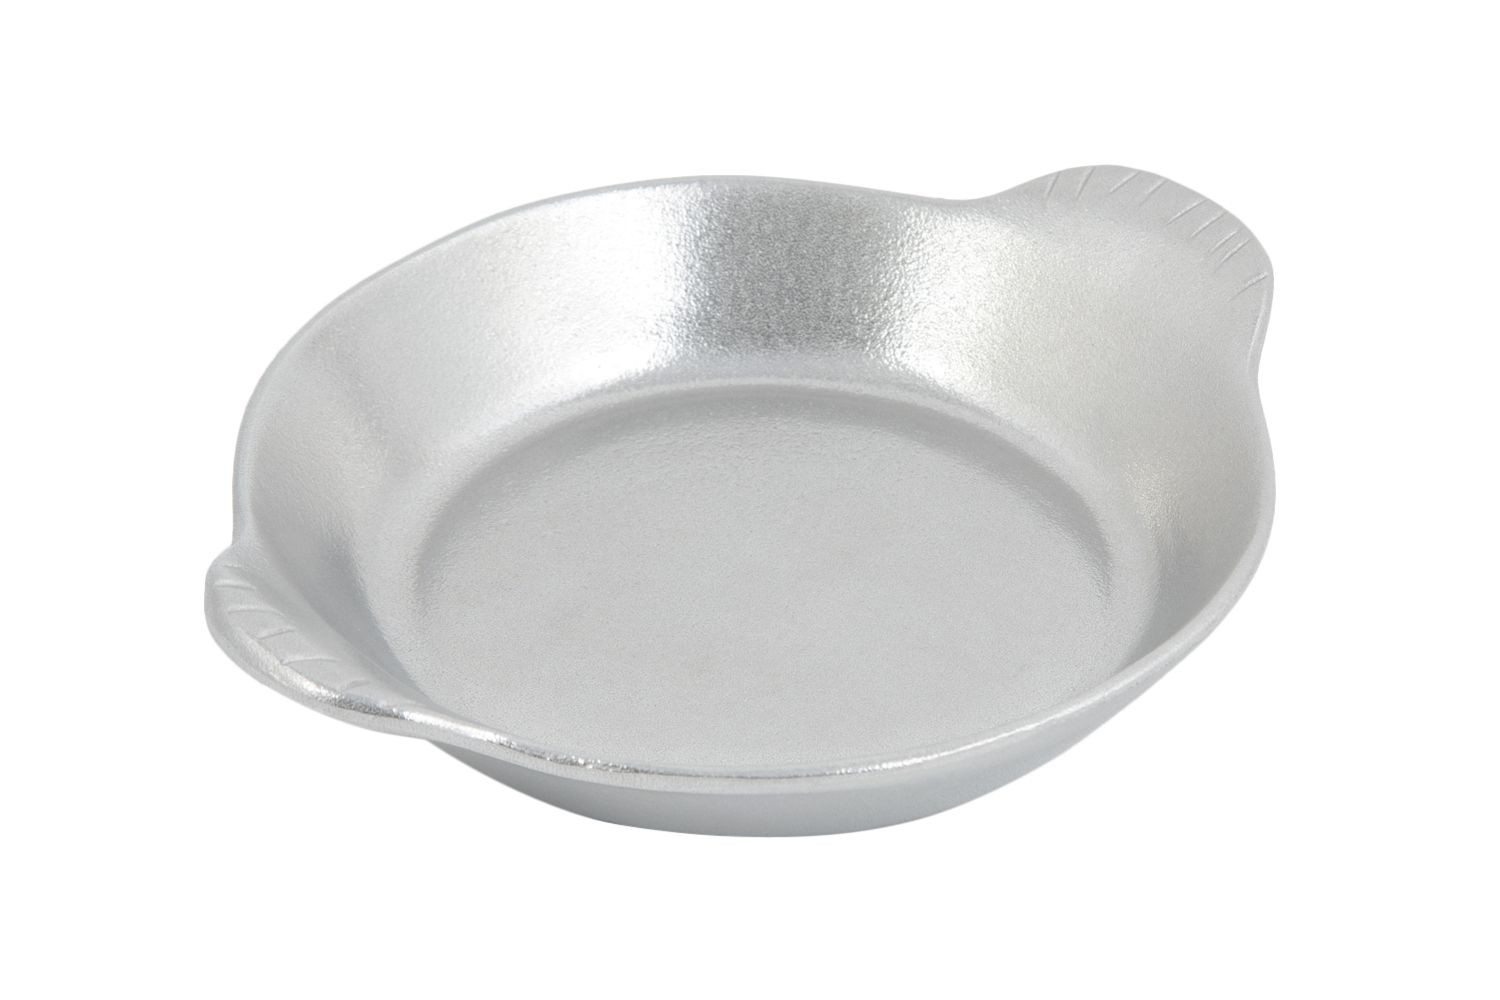 "Bon Chef 5019P Large Round Shirred Egg Dish, Pewter Glo 8 1/4"" Dia., Set of 12"